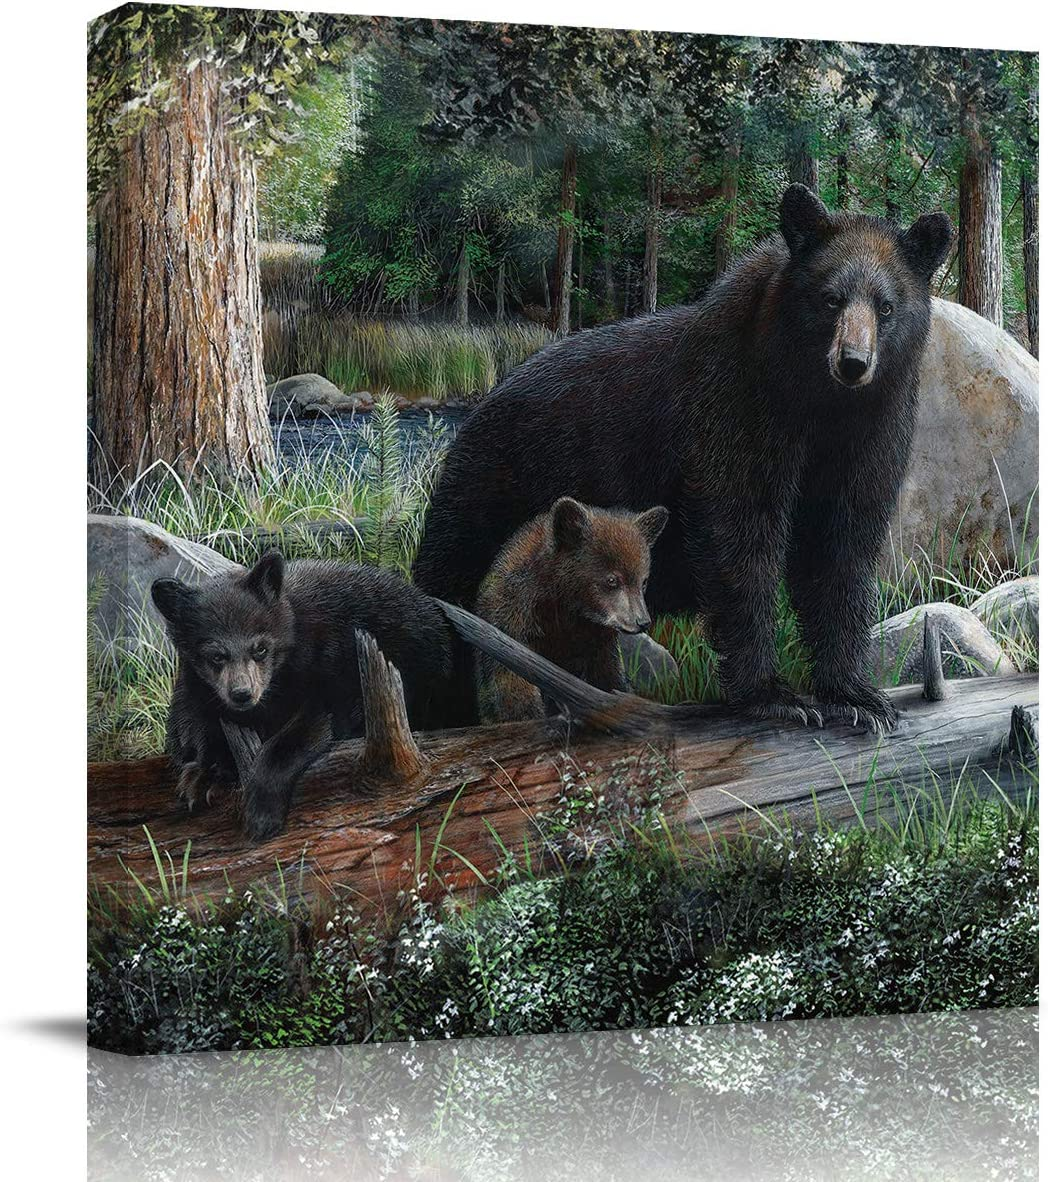 applebless Oil Painting on Canvas Rustic Black Family Bears and Cubs Wall Art Home Decor Wild Animal Forest Modern Pictures Painting for Living Room, Ready to Hang - 20x20 inches